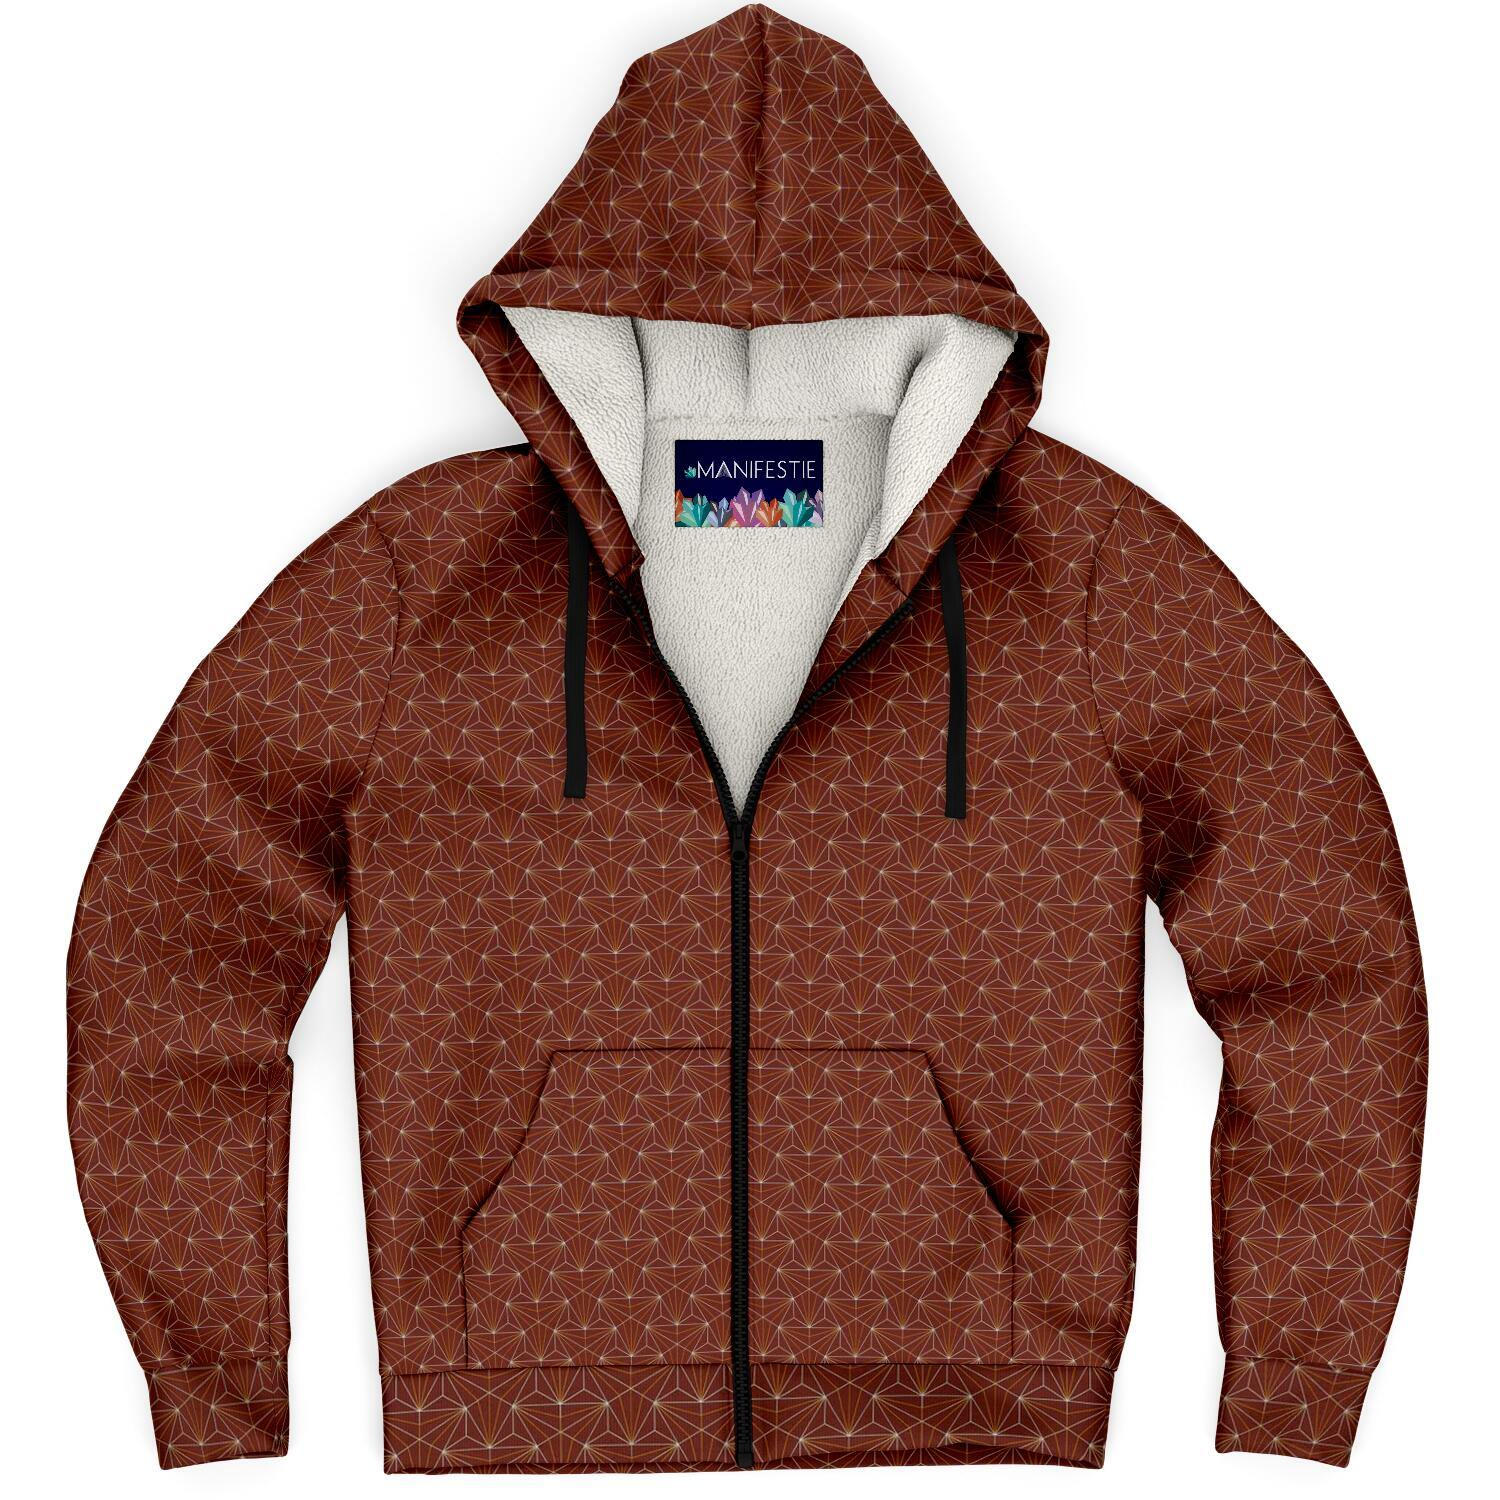 Terra Cotta Sacred Connections Premium Sherpa Lined Zip Hoodie